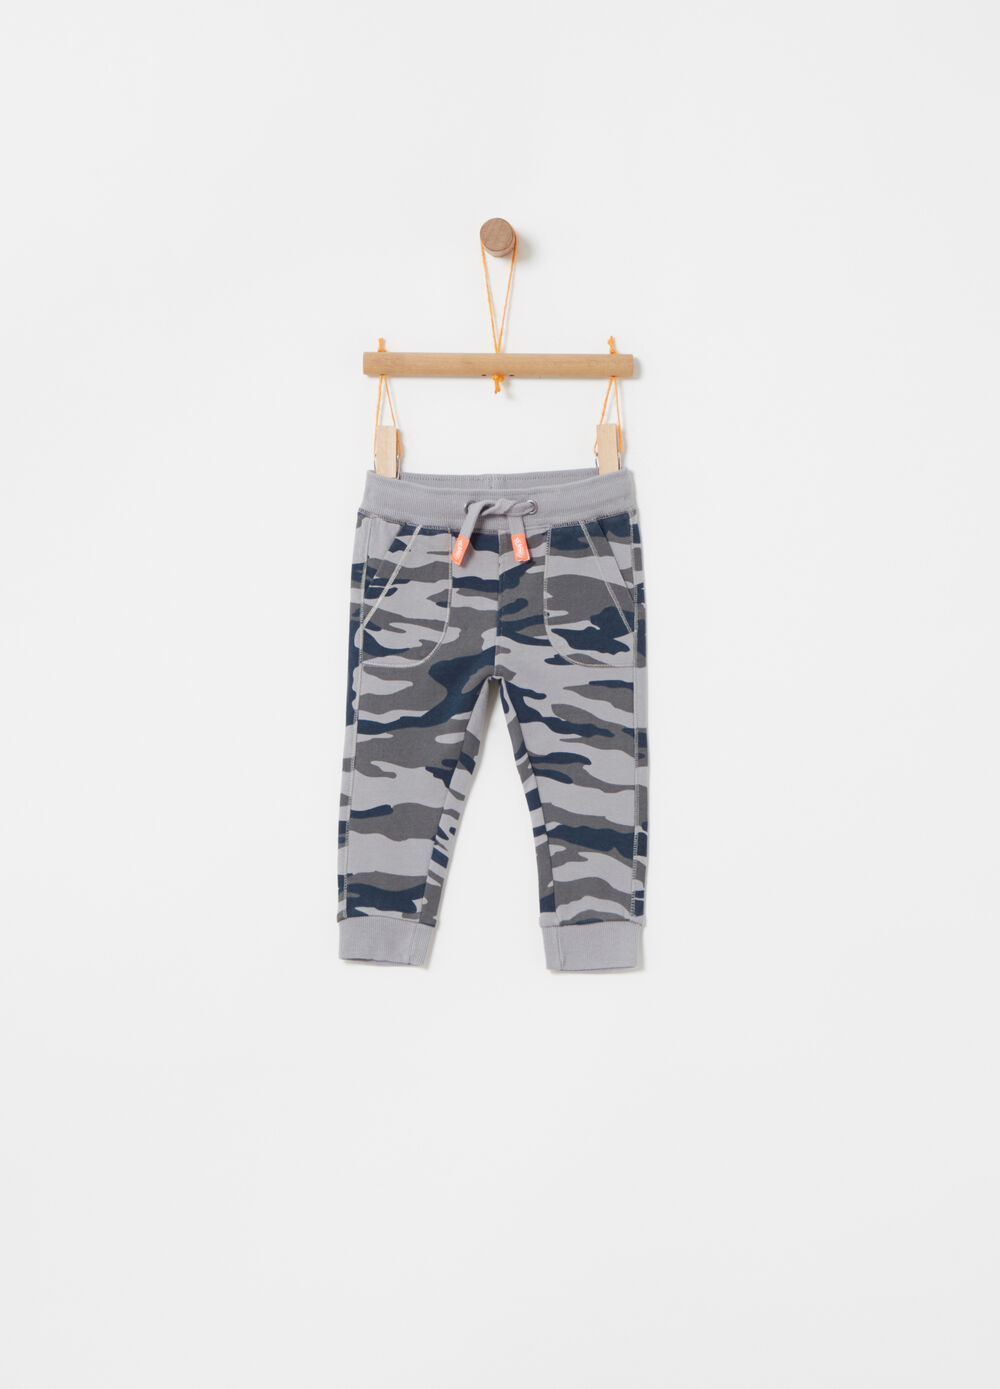 Pantaloni in cotone camouflage all-over